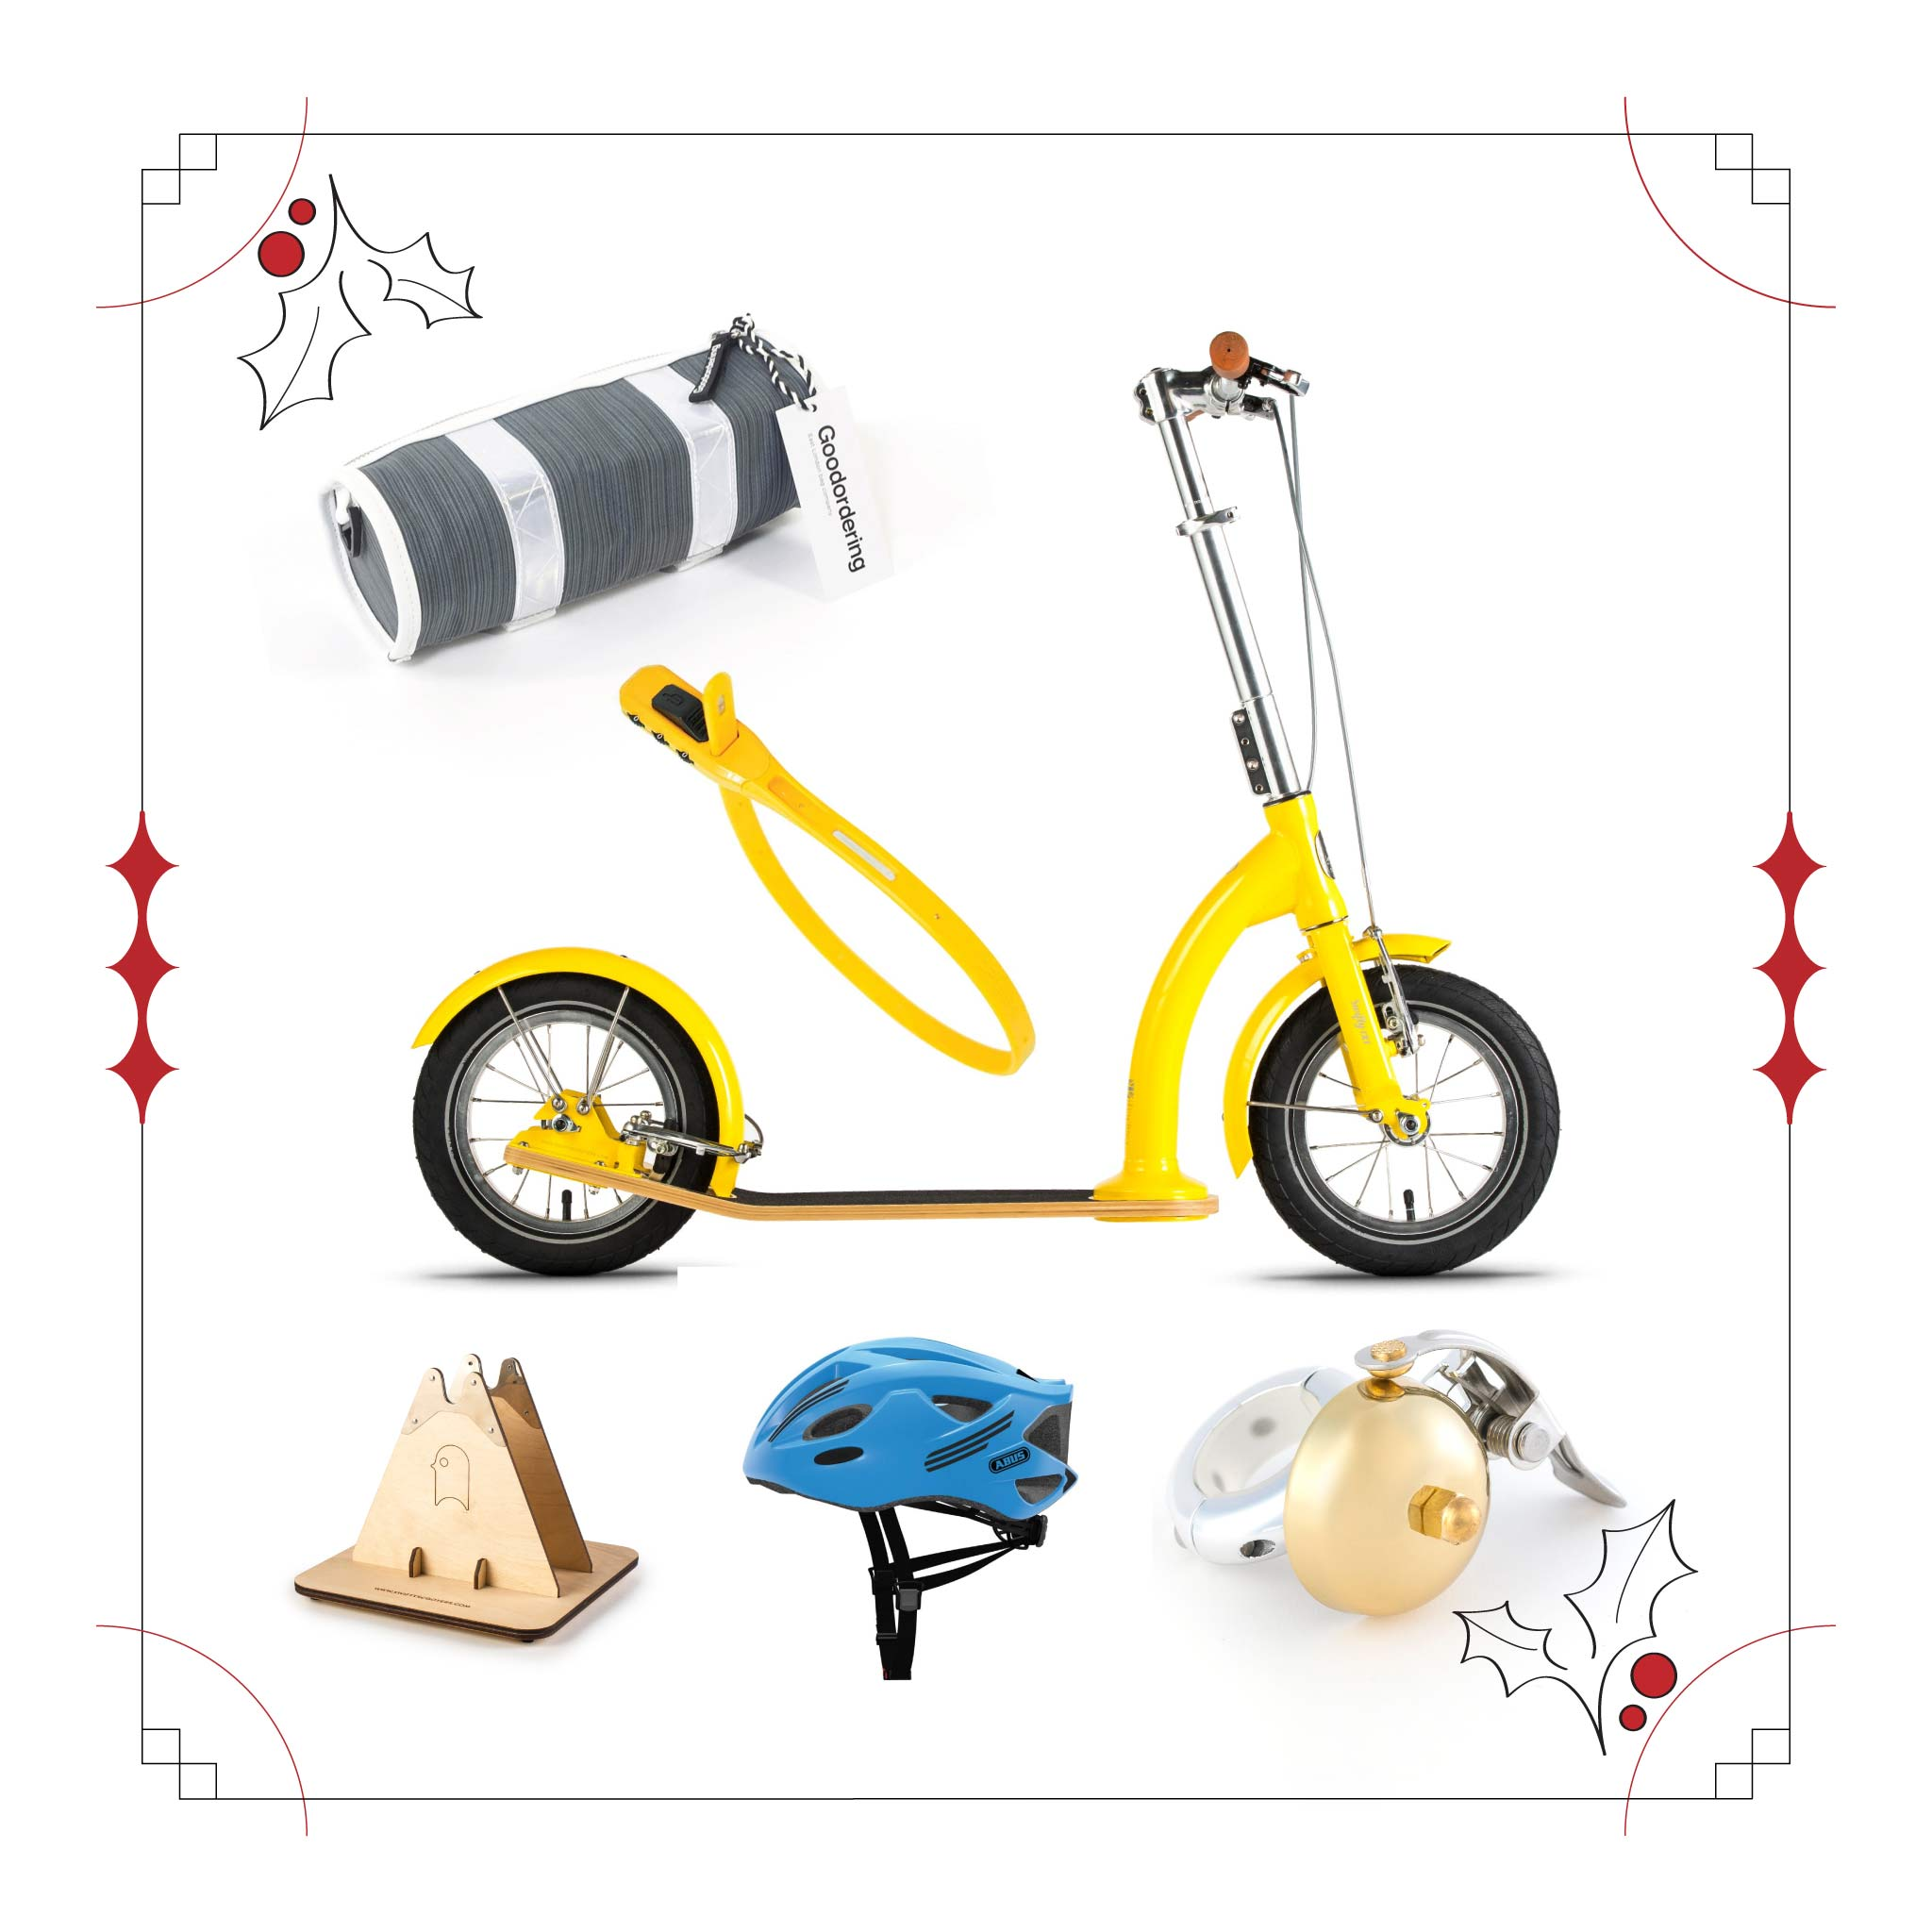 Kids scooter, best scooter for kids, best kids scooter, christmas presents for kids